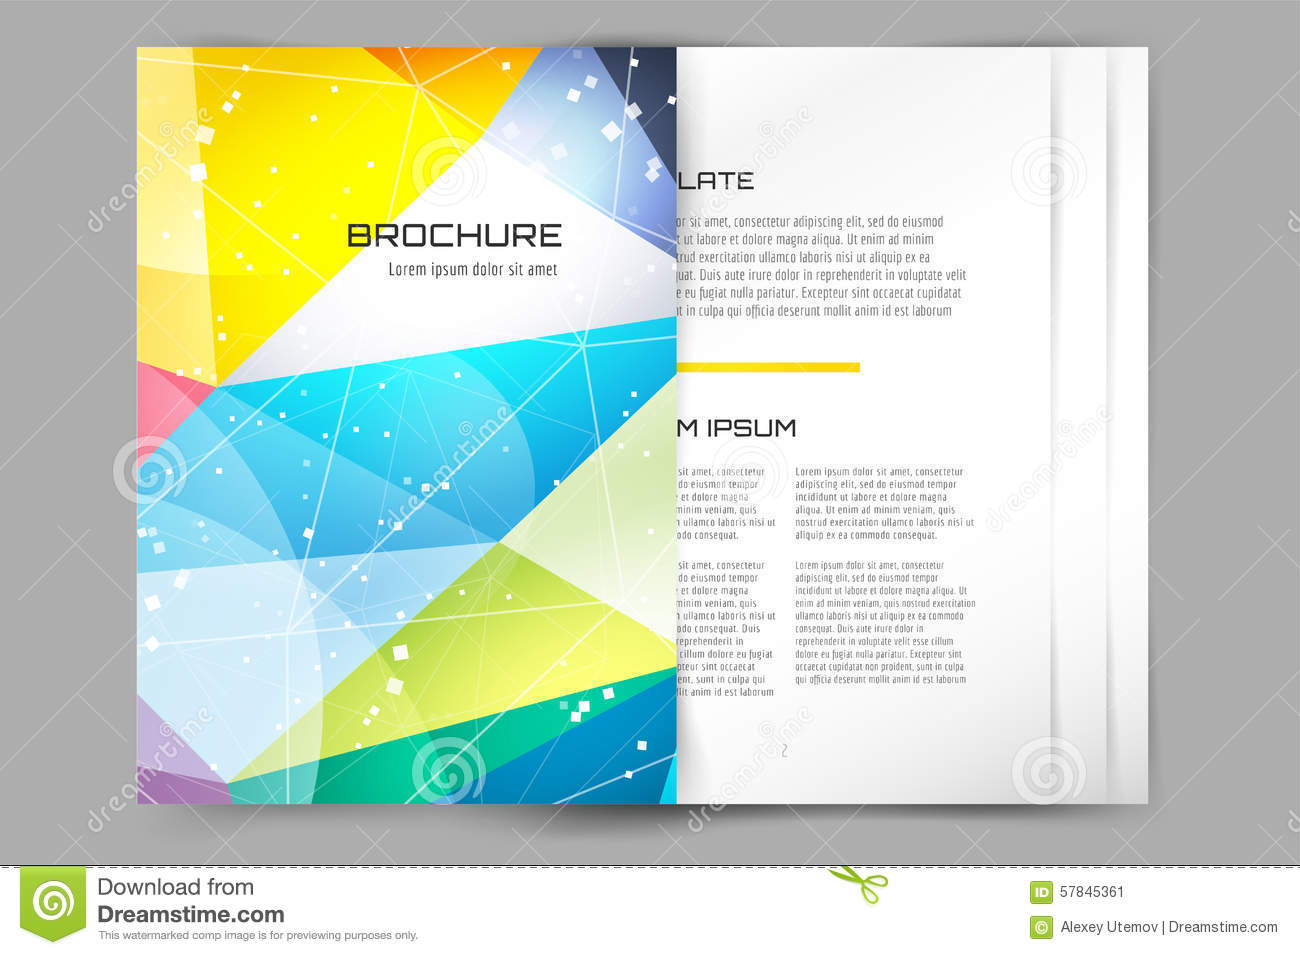 Beautiful 1 Page Resumes Big 10 Envelope Template Indesign Solid 100 Day Plan Template 10x13 Envelope Template Youthful 16x20 Collage Template Fresh18th Birthday Invitation Templates Business Card Template. Abstract Triangle Design Stock Vector ..